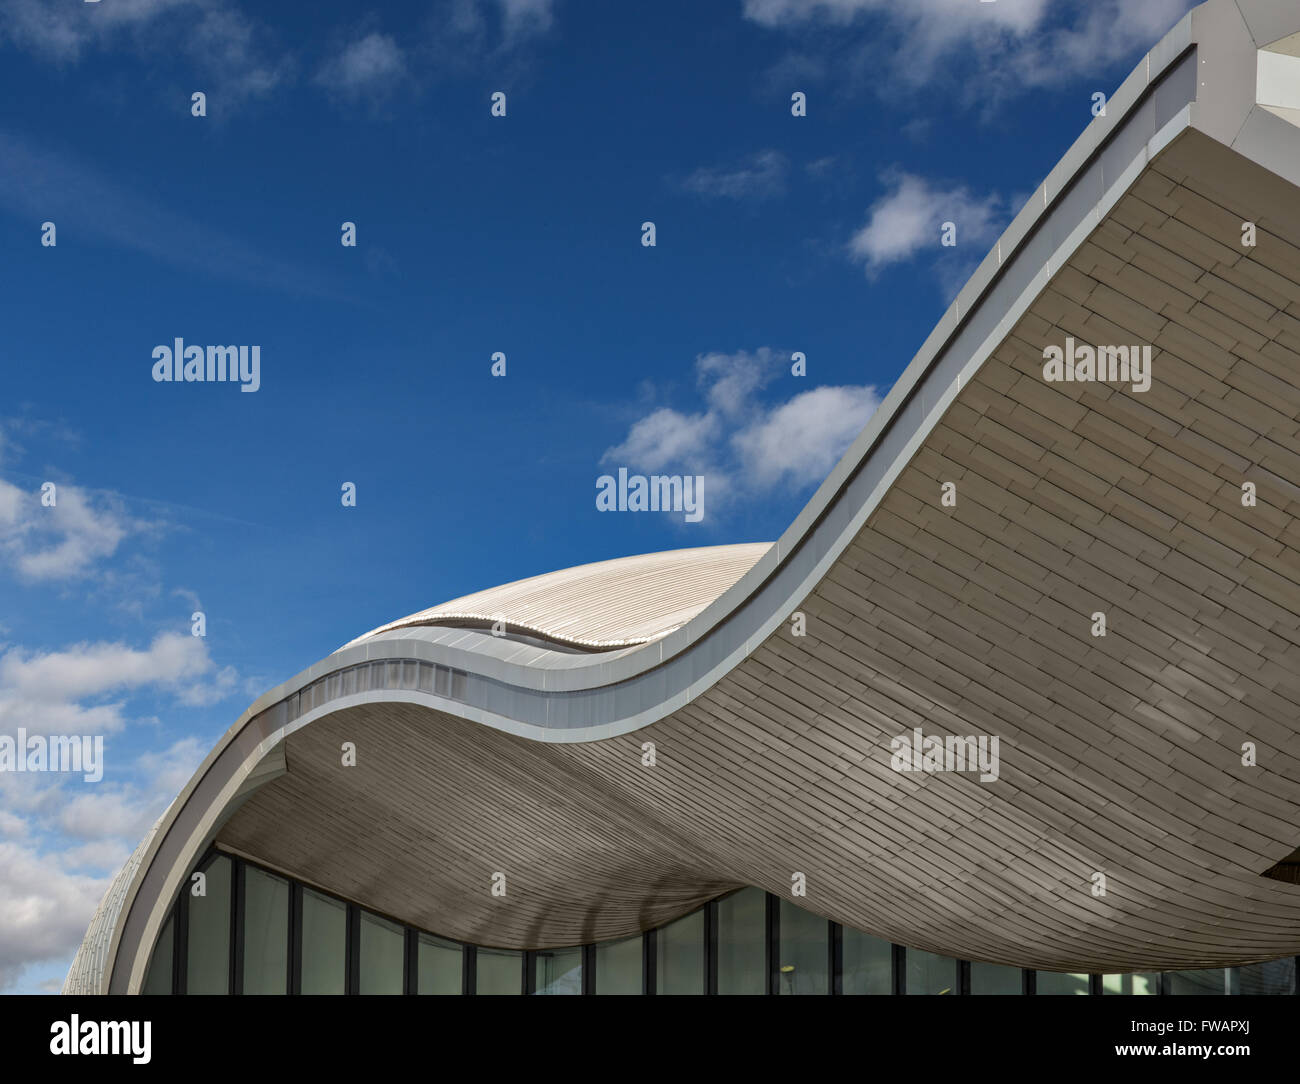 La gare routière de Slough conçu par Architecture Bblur Photo Stock